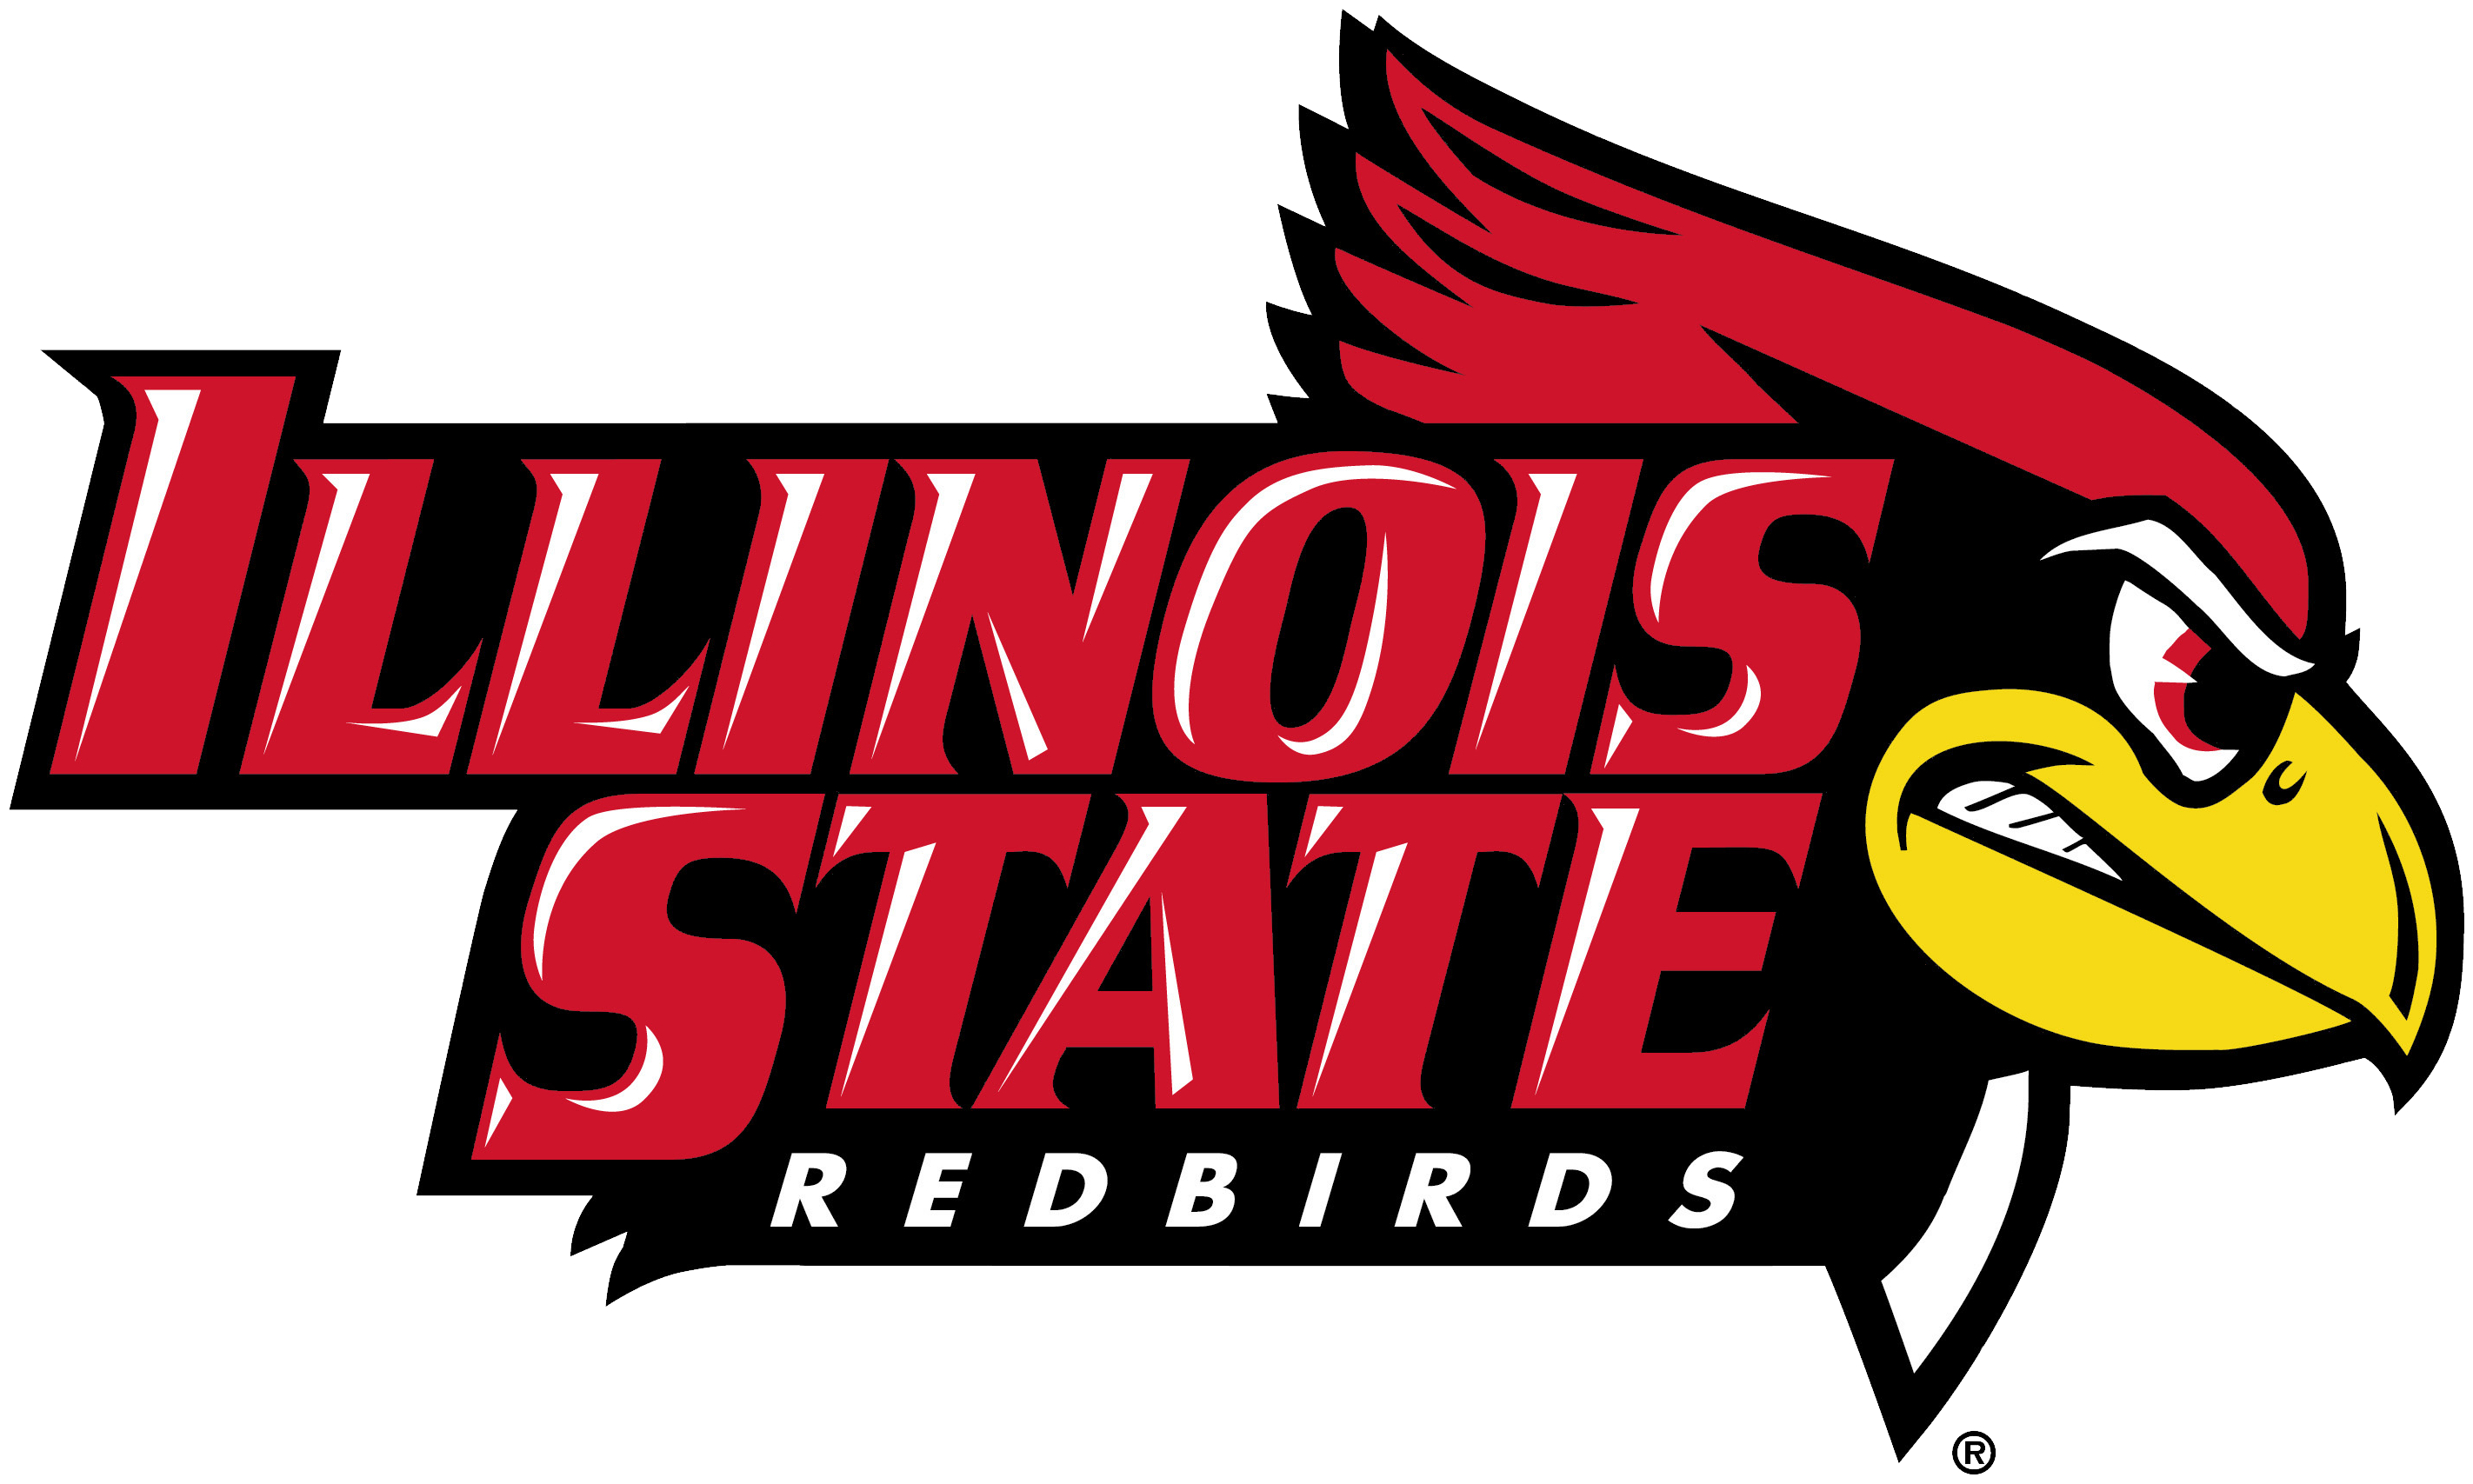 Illinois State Redbirds Logo in all capital letters with a cartoon image of a red cardinal with a yellow beak who looks ready to fight